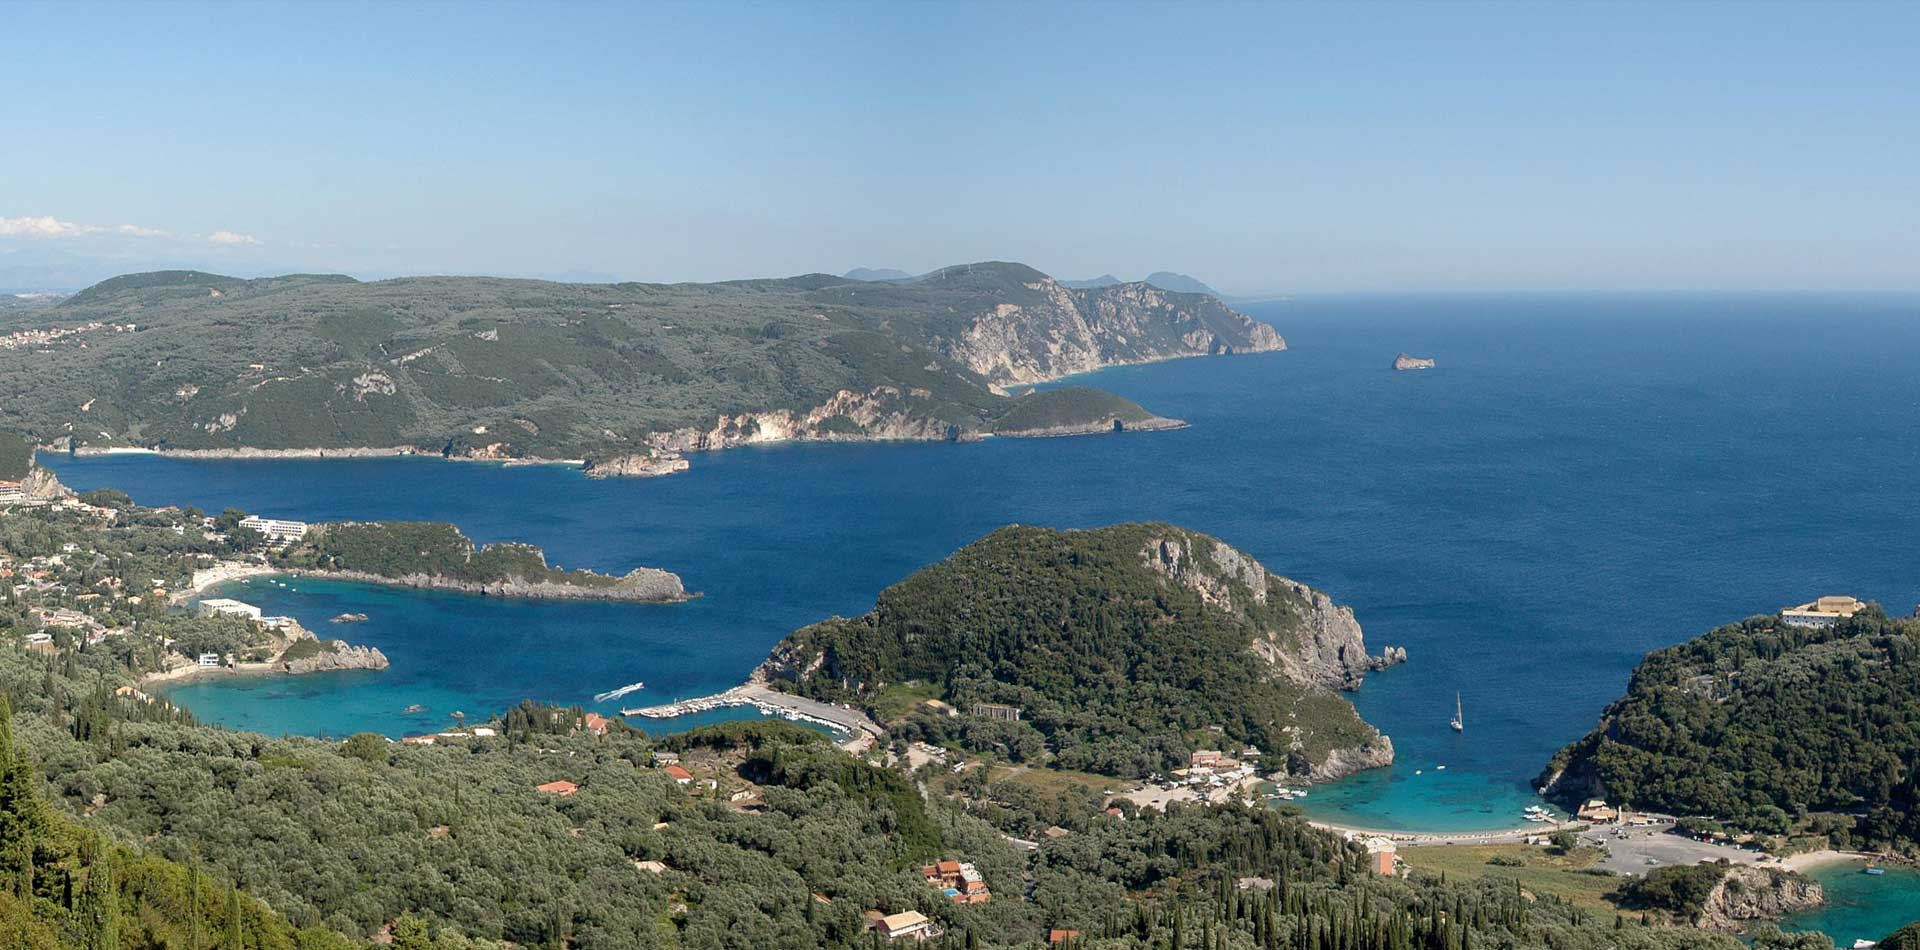 Paleokastritsa, the most photographed resort!